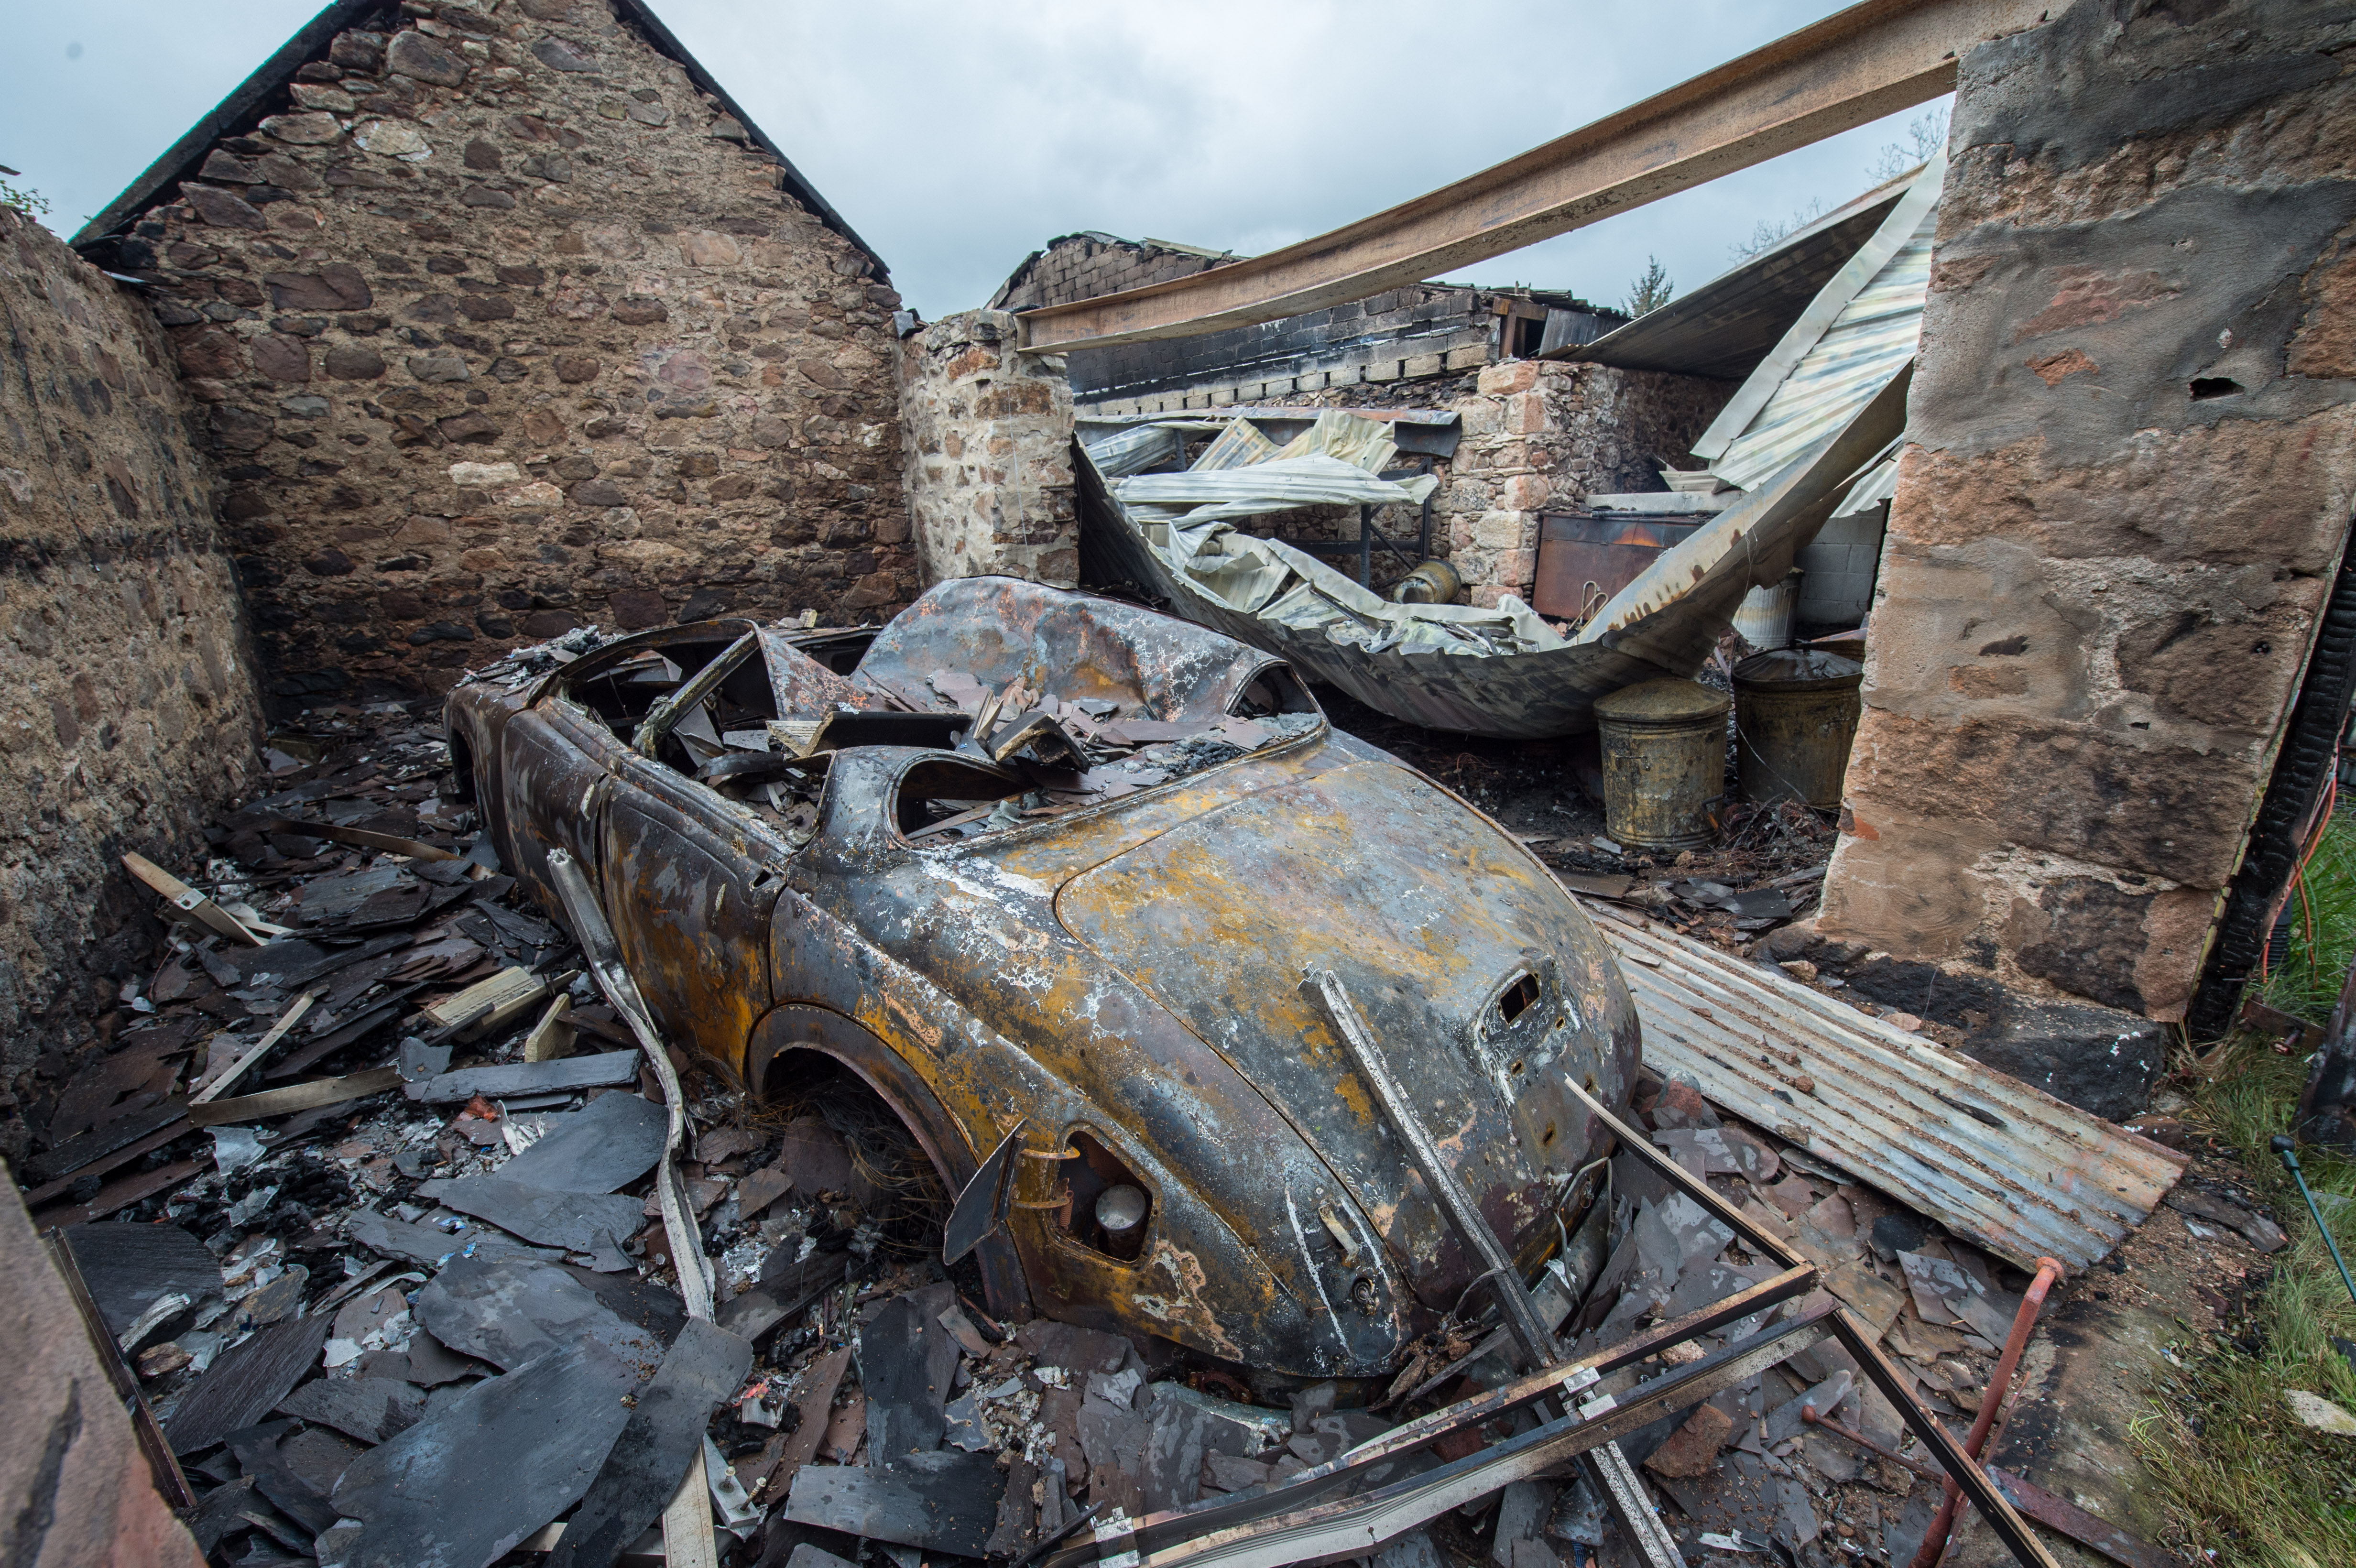 Pictures show the remains of Cortietown Farm house in Clatt, Aberdeenshire. Pictures by Jason Hedges.